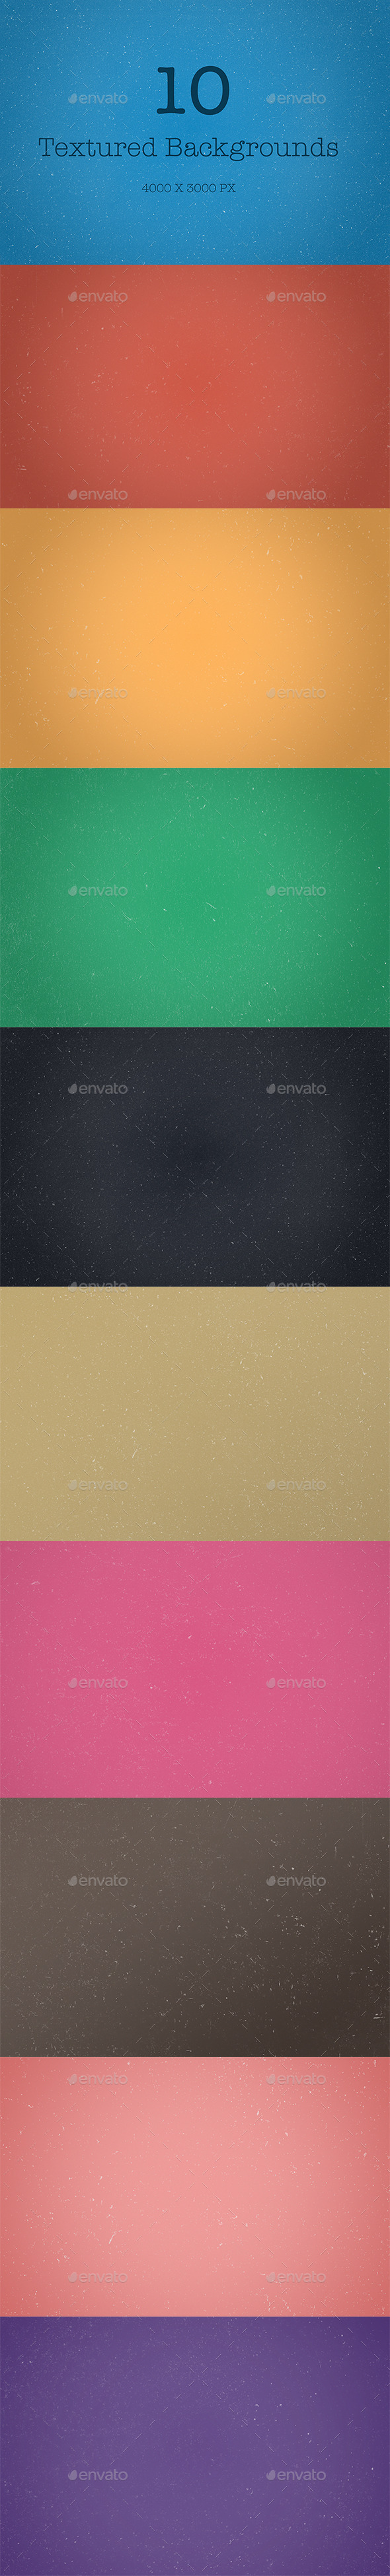 10 Textured Backgrounds